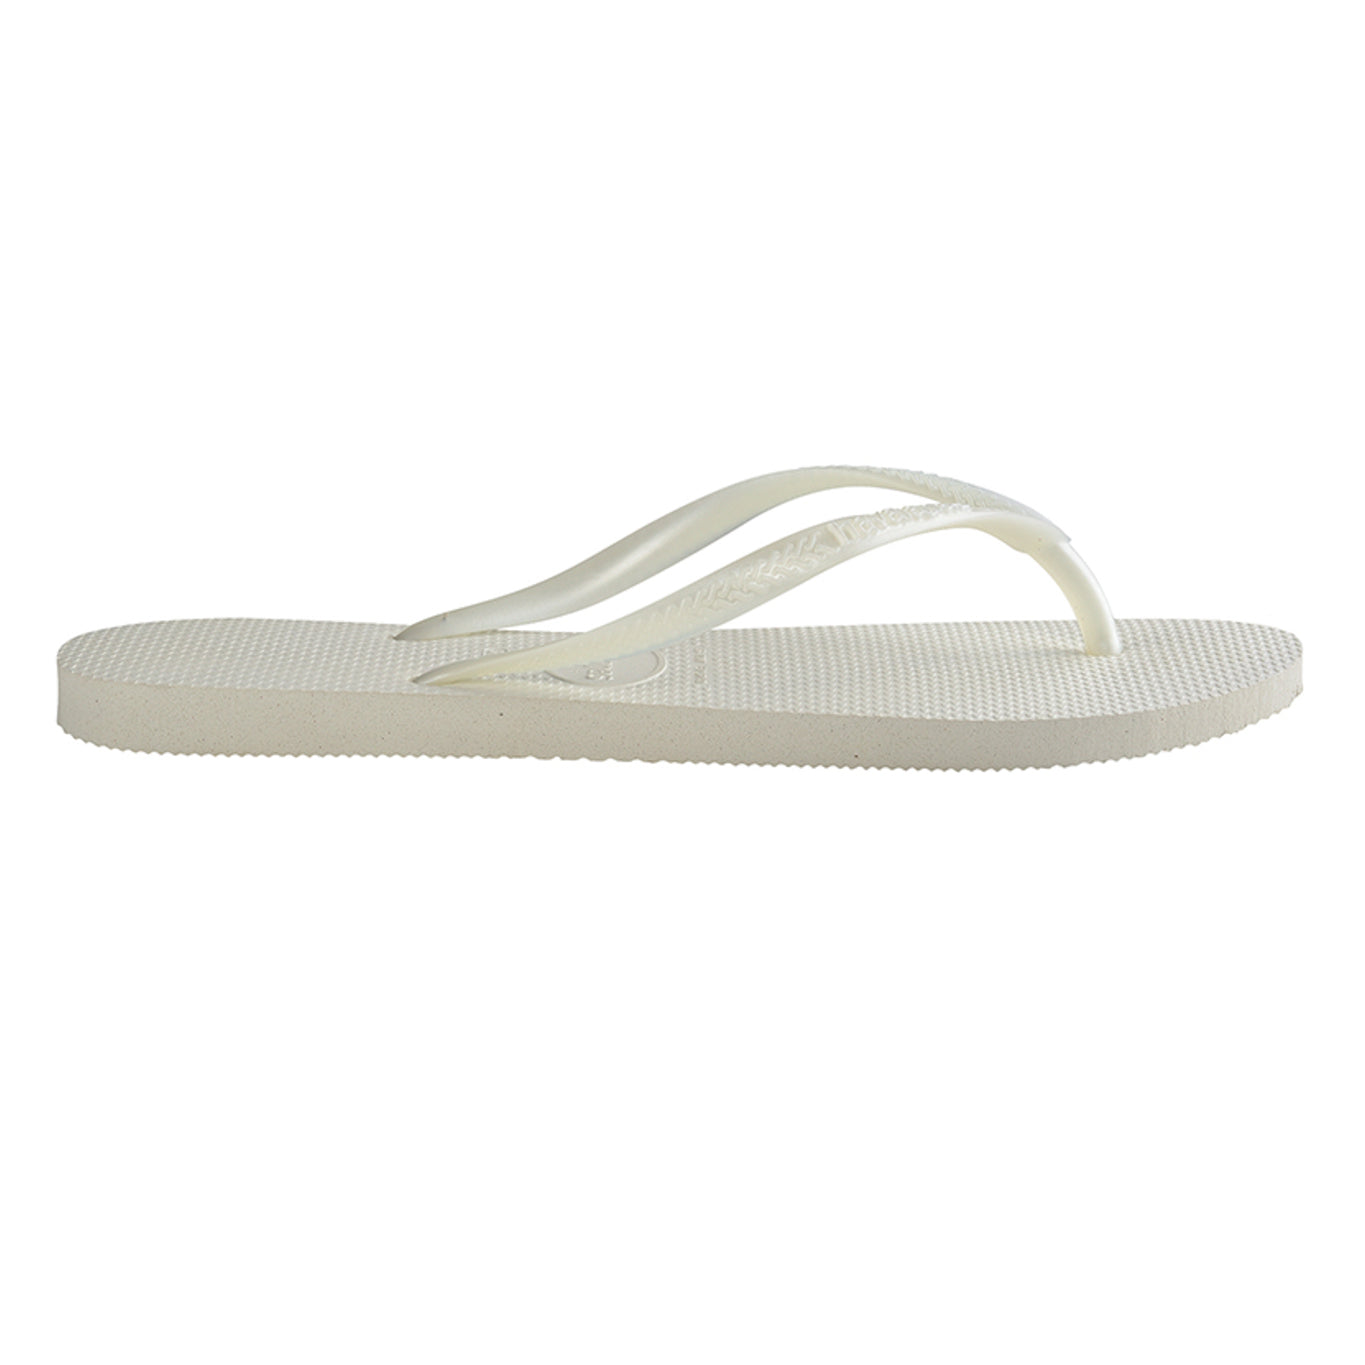 Havaianas flip flop - Ladies Slim - White